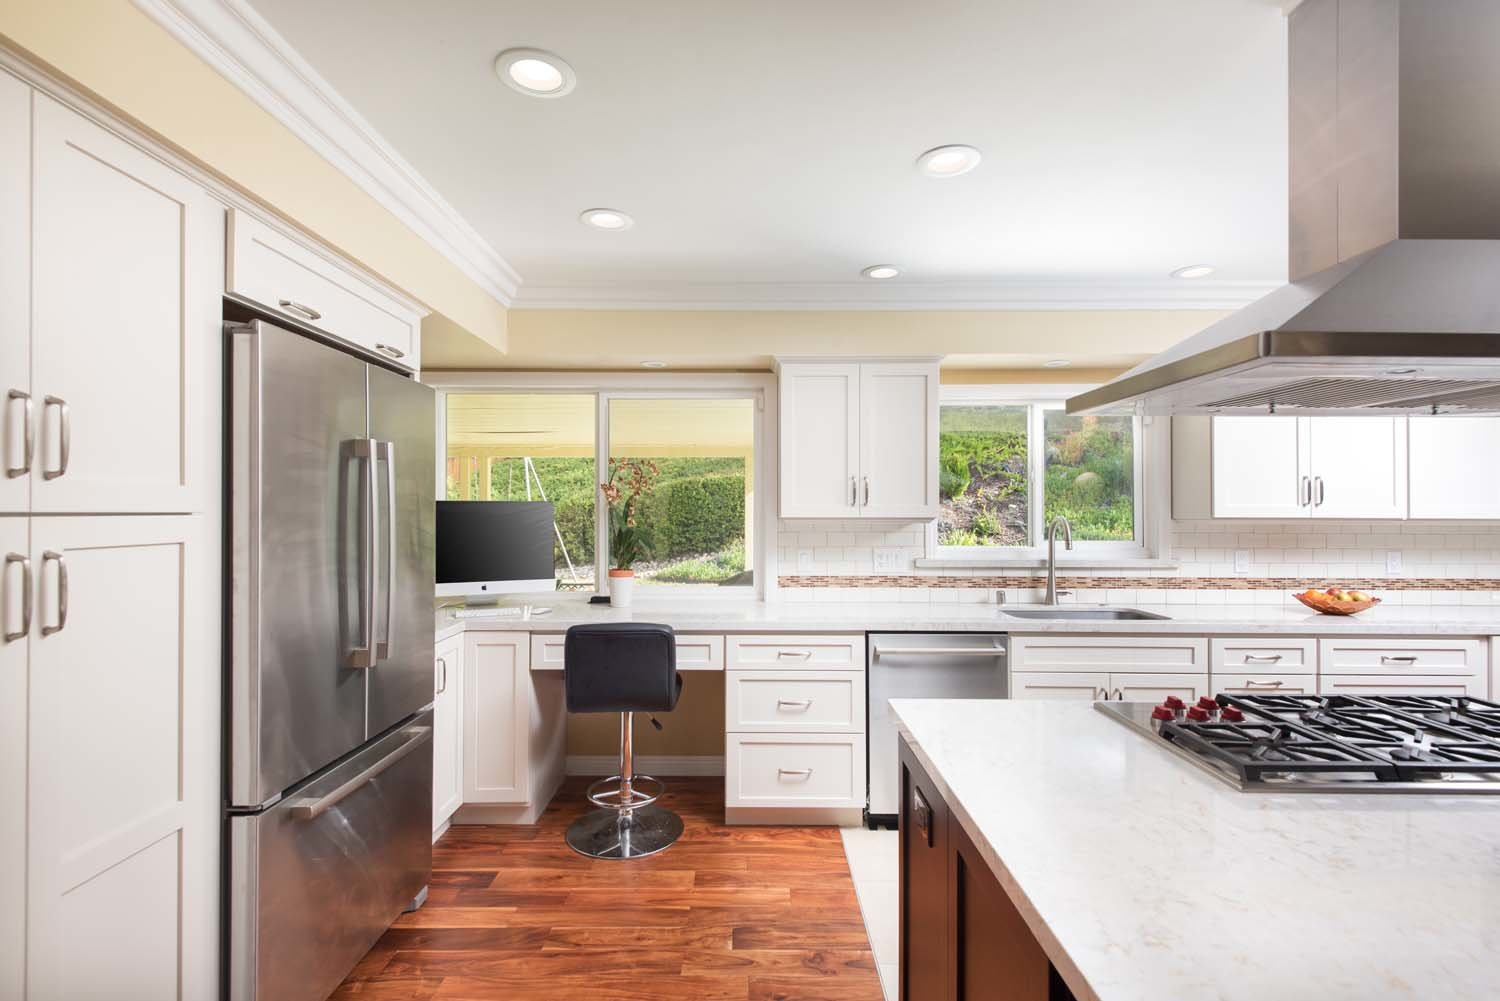 Large kitchen remodel that included adding light by adding new windows